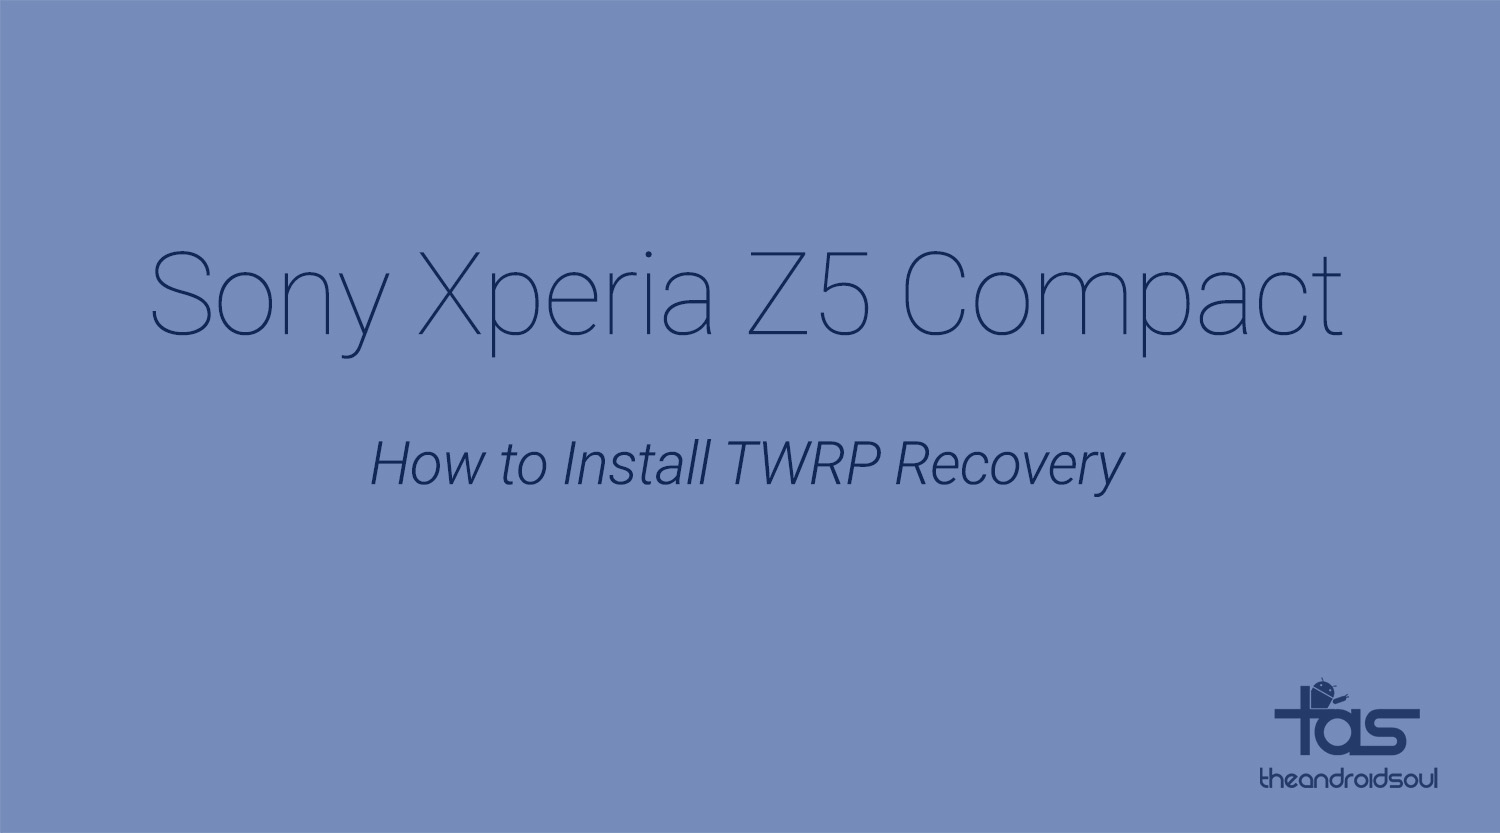 Sony Xperia Z5 Compact TWRP Recovery: Downloads and